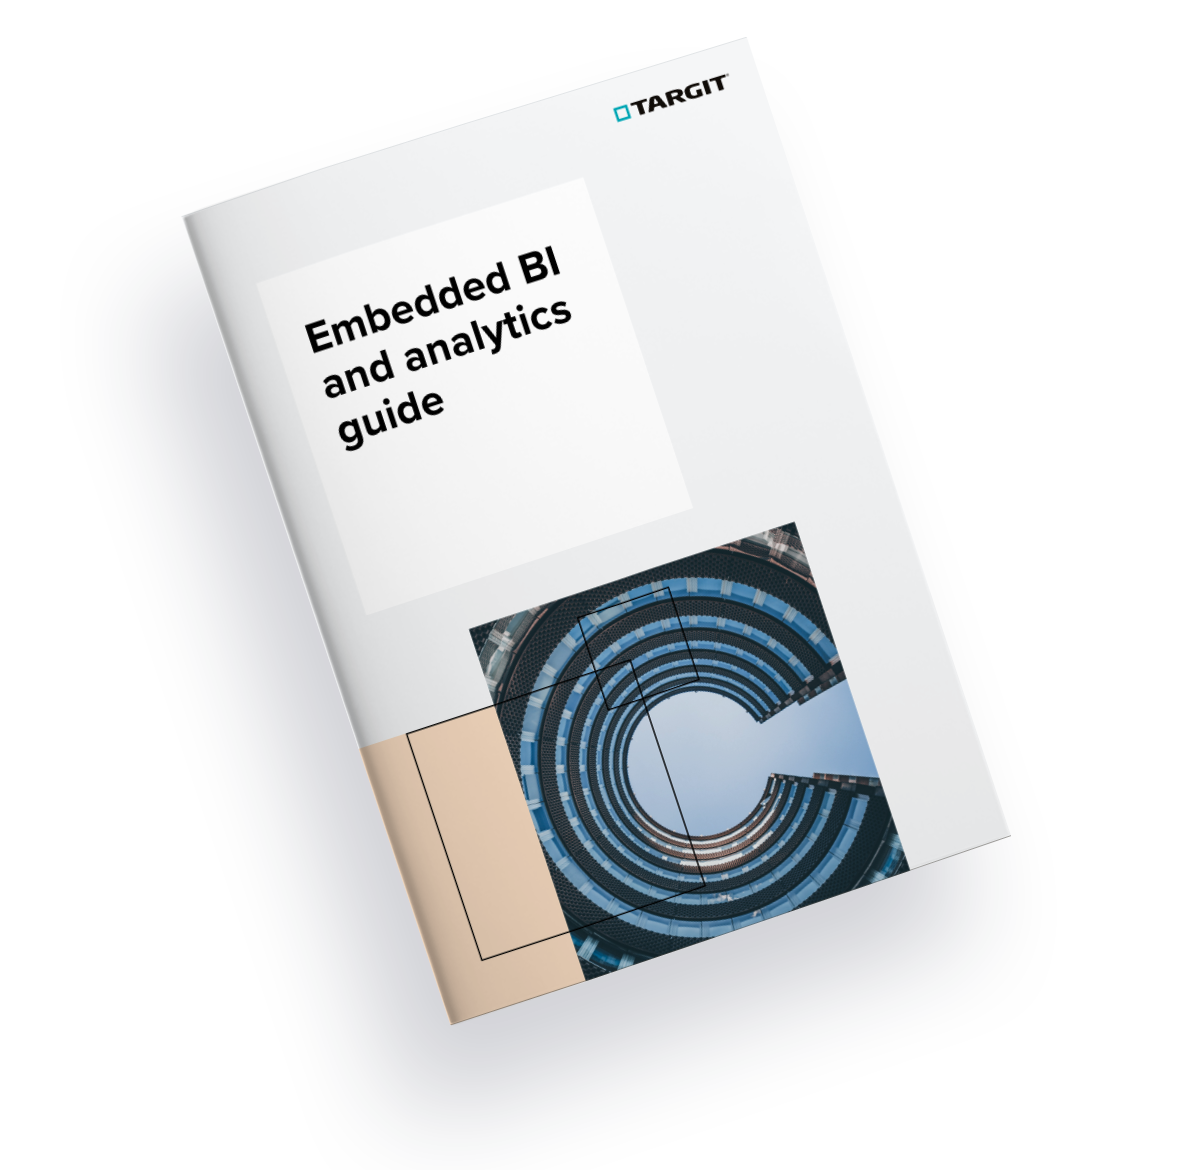 Embedded BI and analytics guide cover